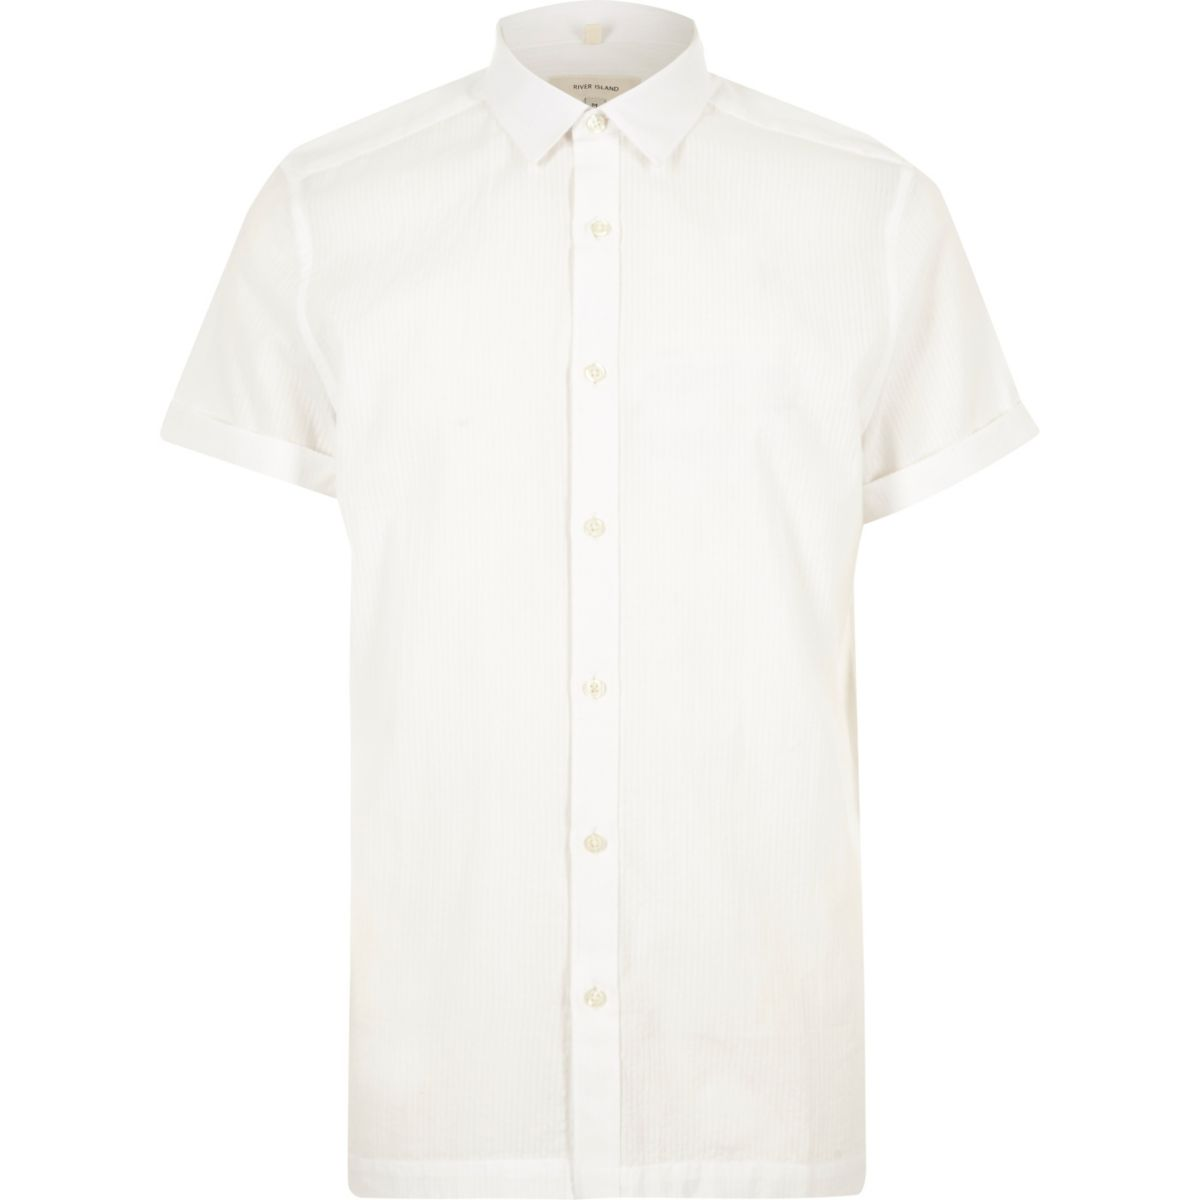 White seersucker short sleeve shirt shirts sale men for Mens seersucker shirts on sale